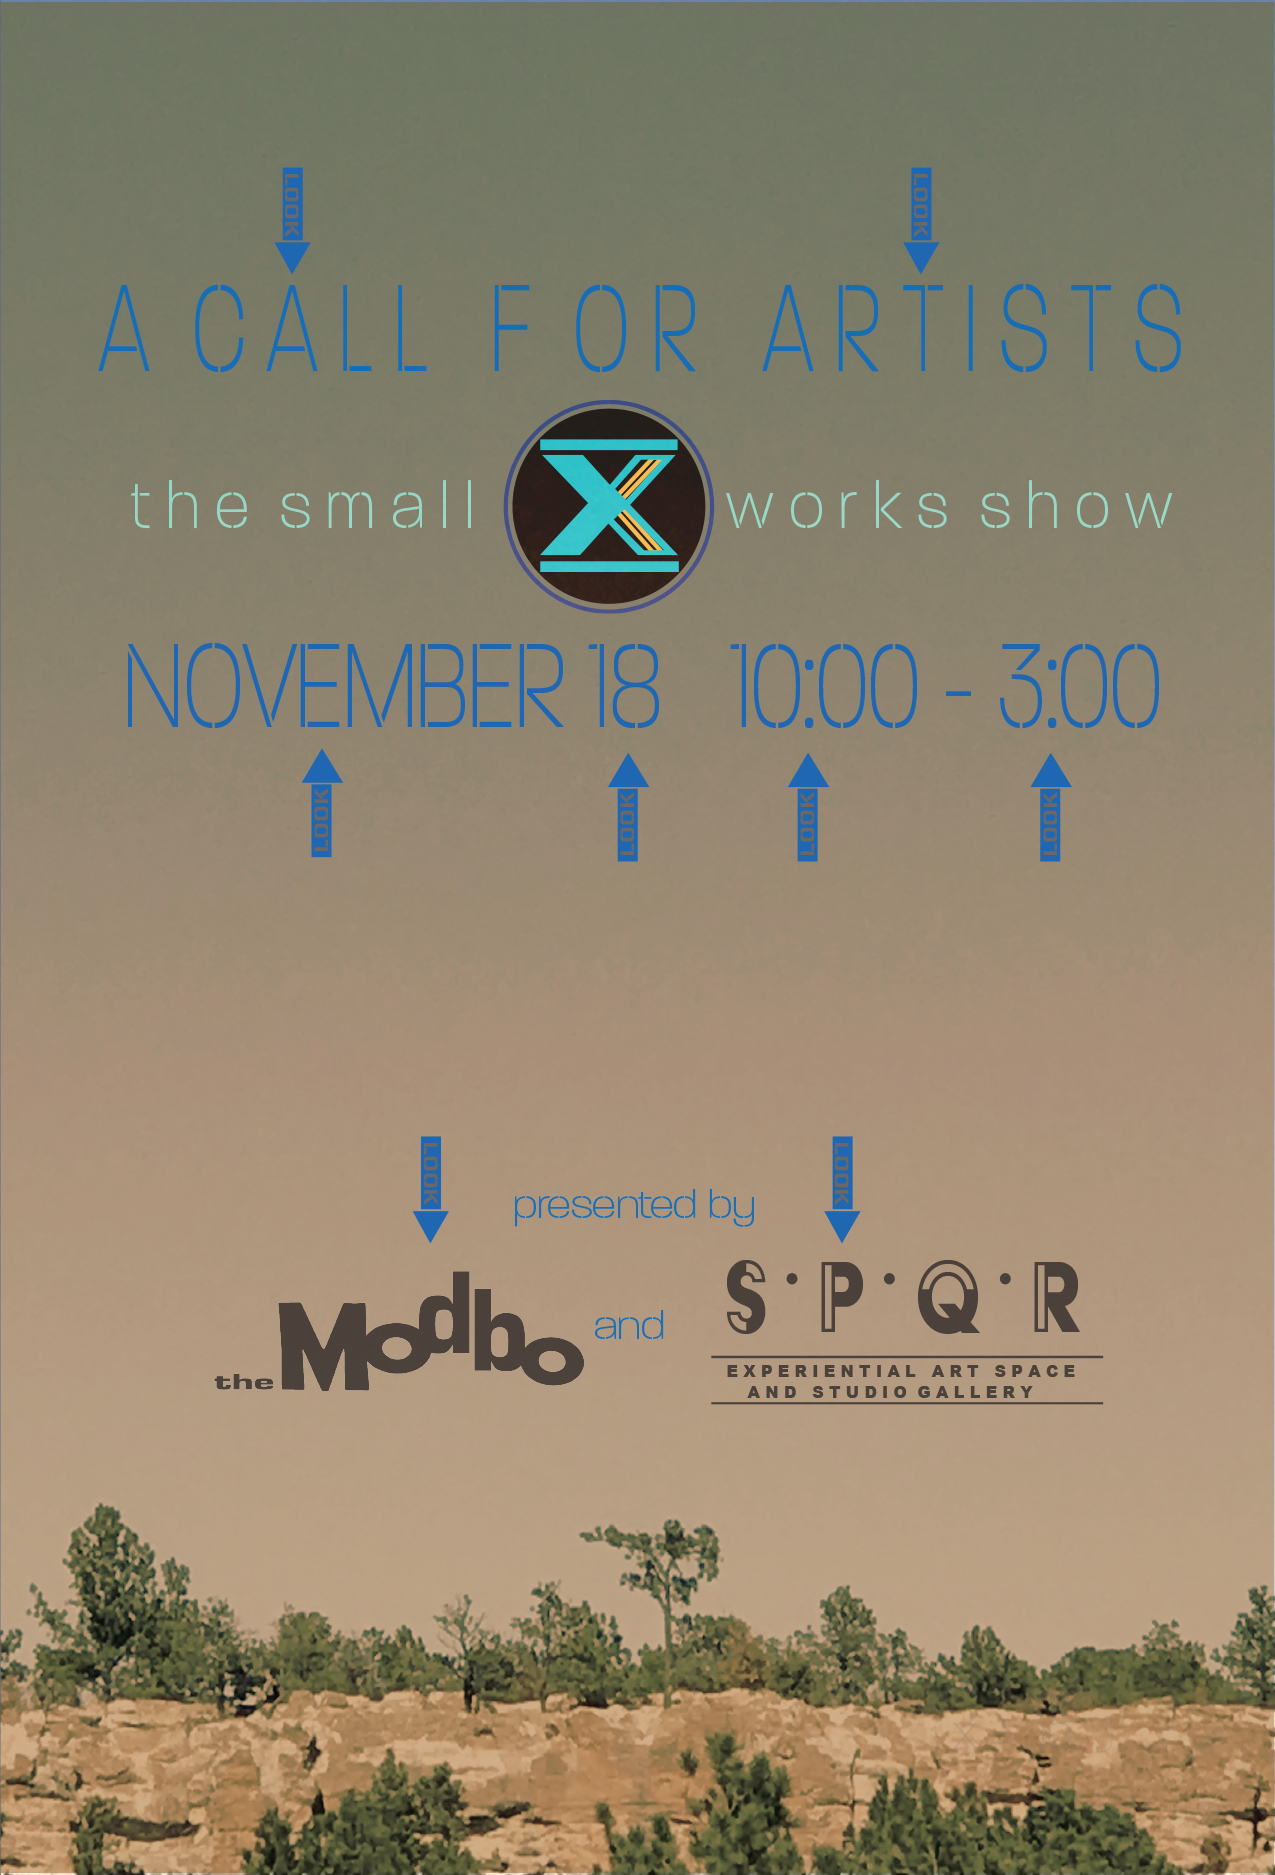 A Call for Artists: it's the Tenth Annual Small Works Exhibition!